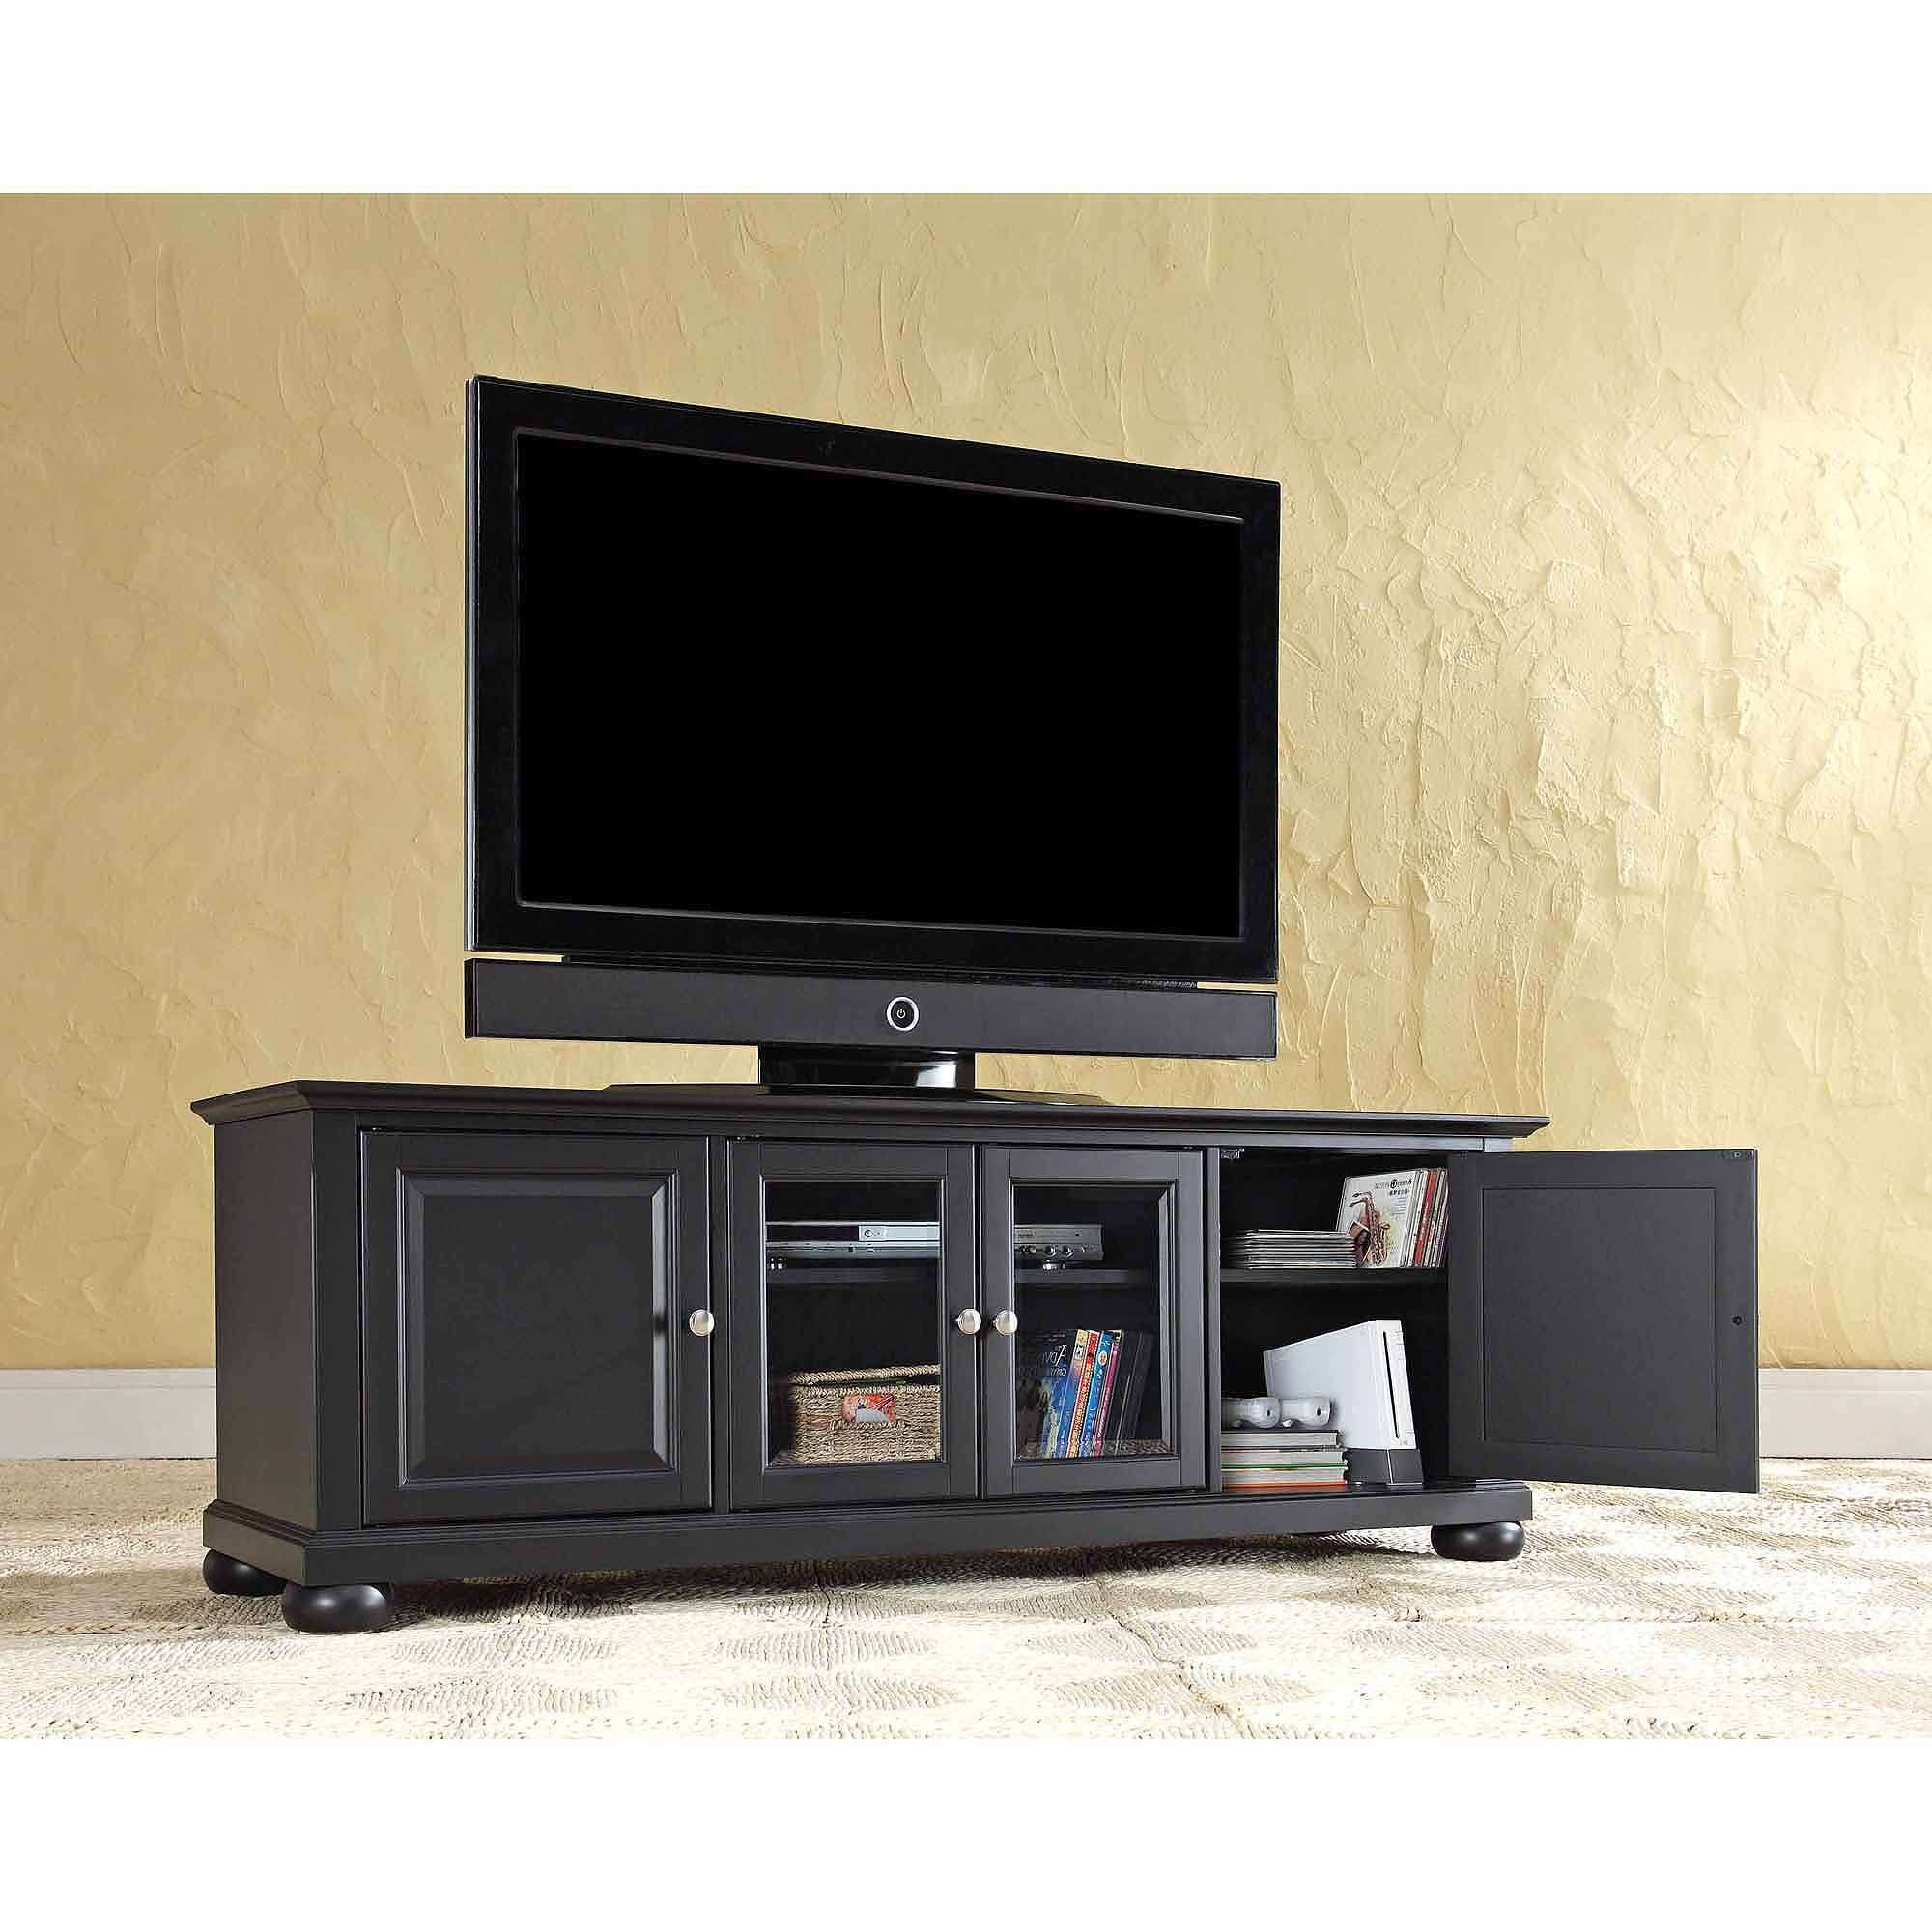 Tv Stand : Tv Stands Corner Tvnd For Inch Flat Screen Remarkable Regarding Corner 60 Inch Tv Stands (View 12 of 15)